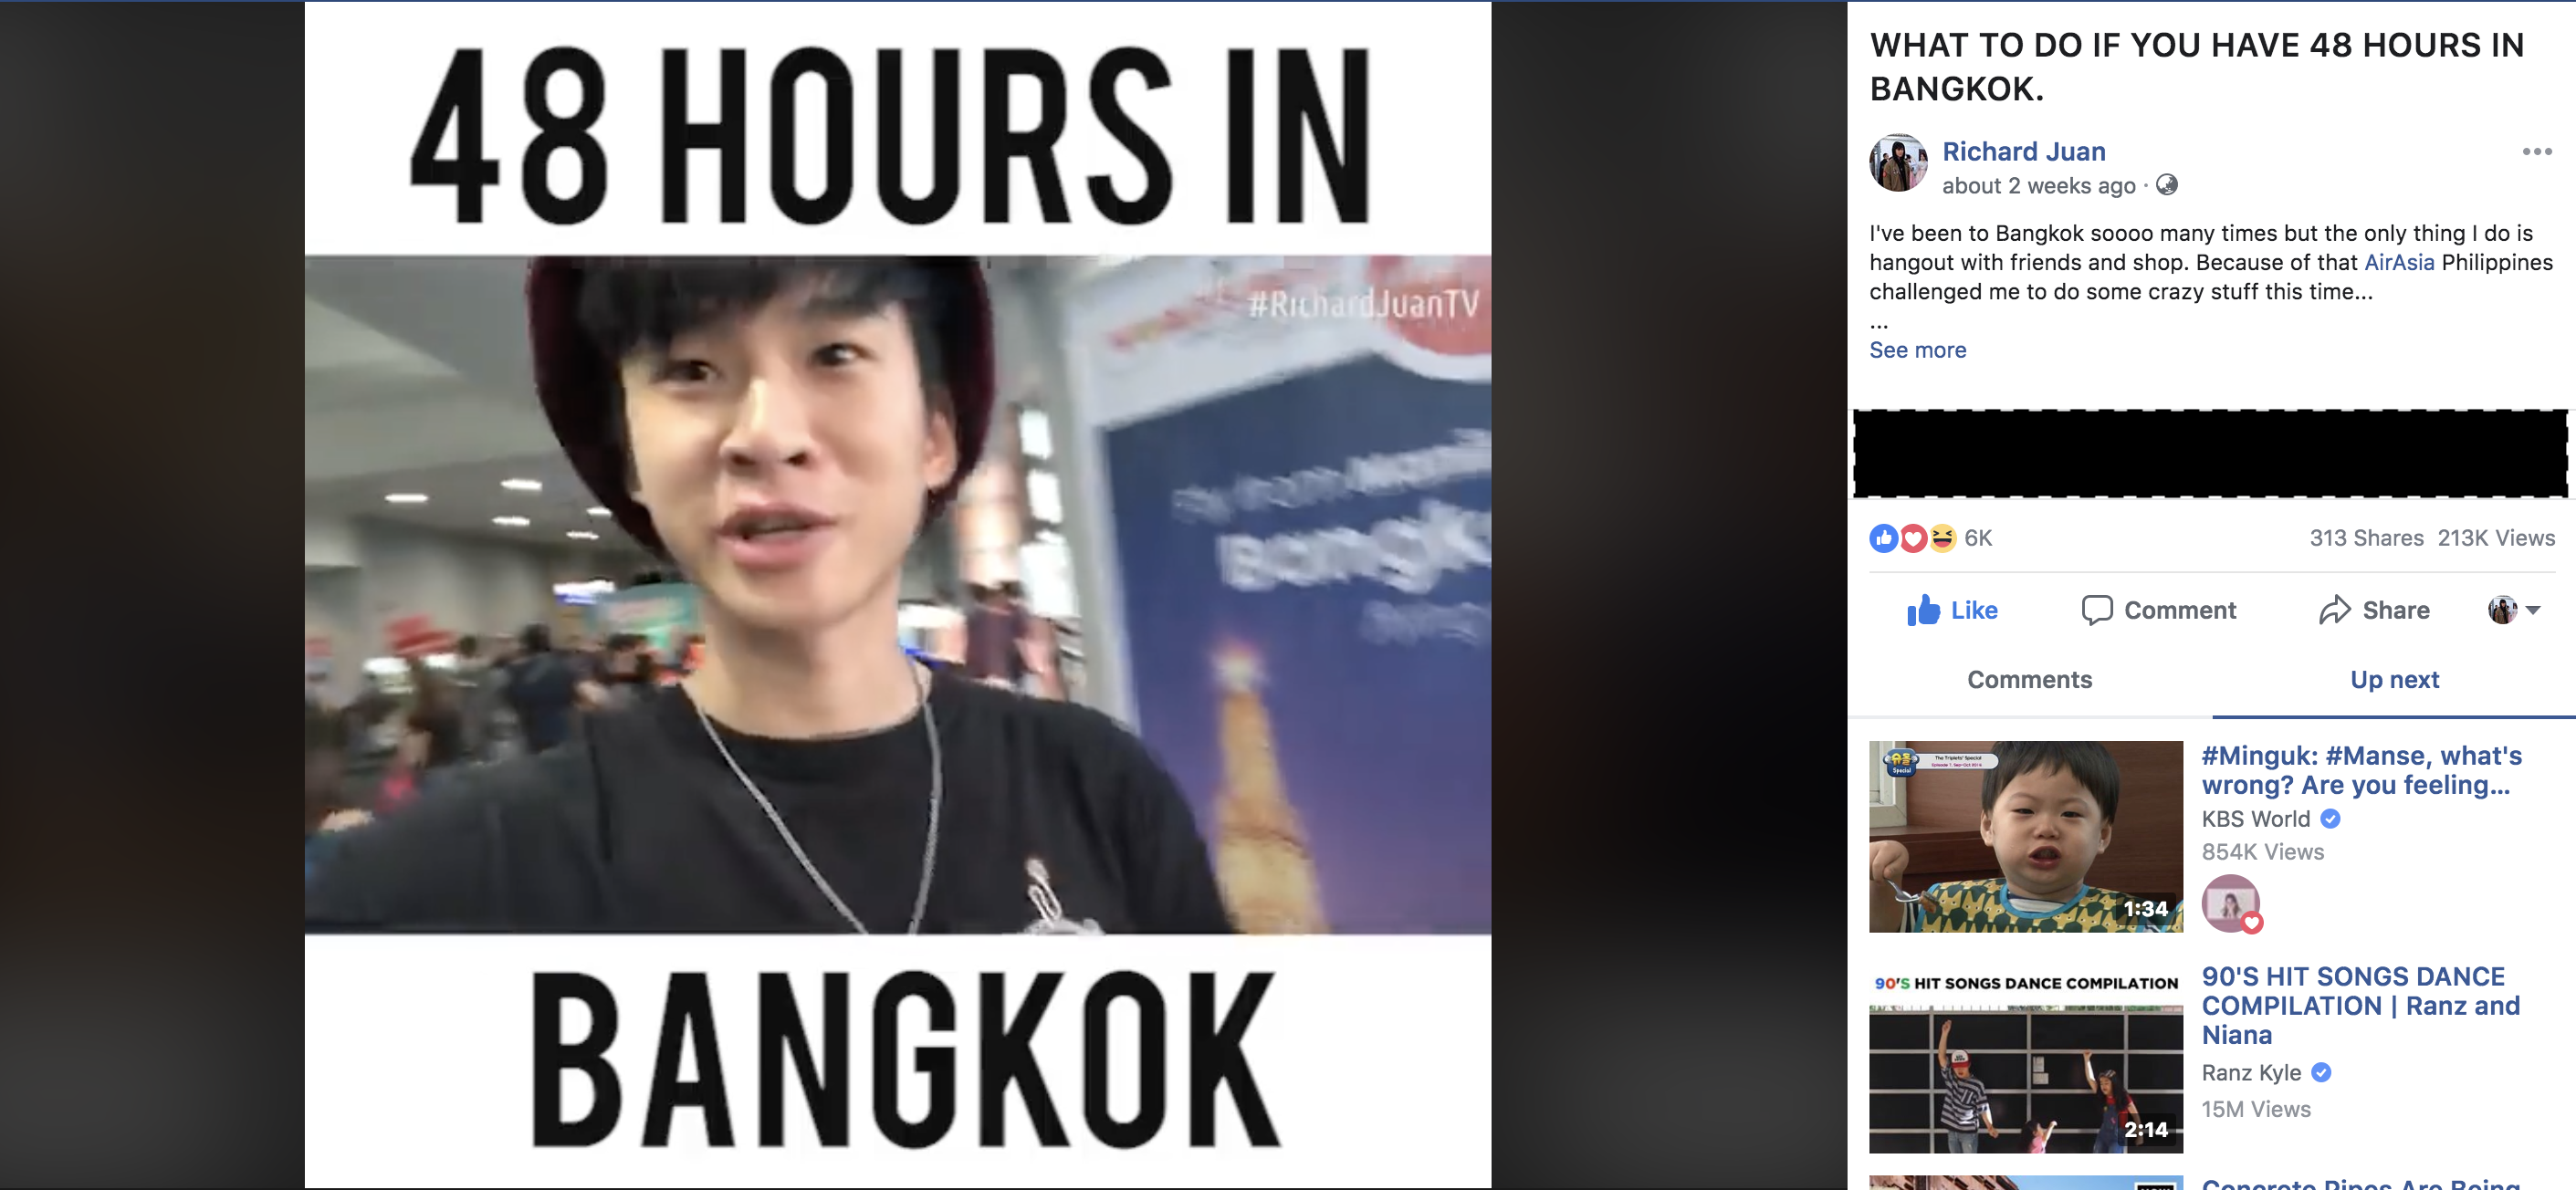 facebook video /@richardjuan